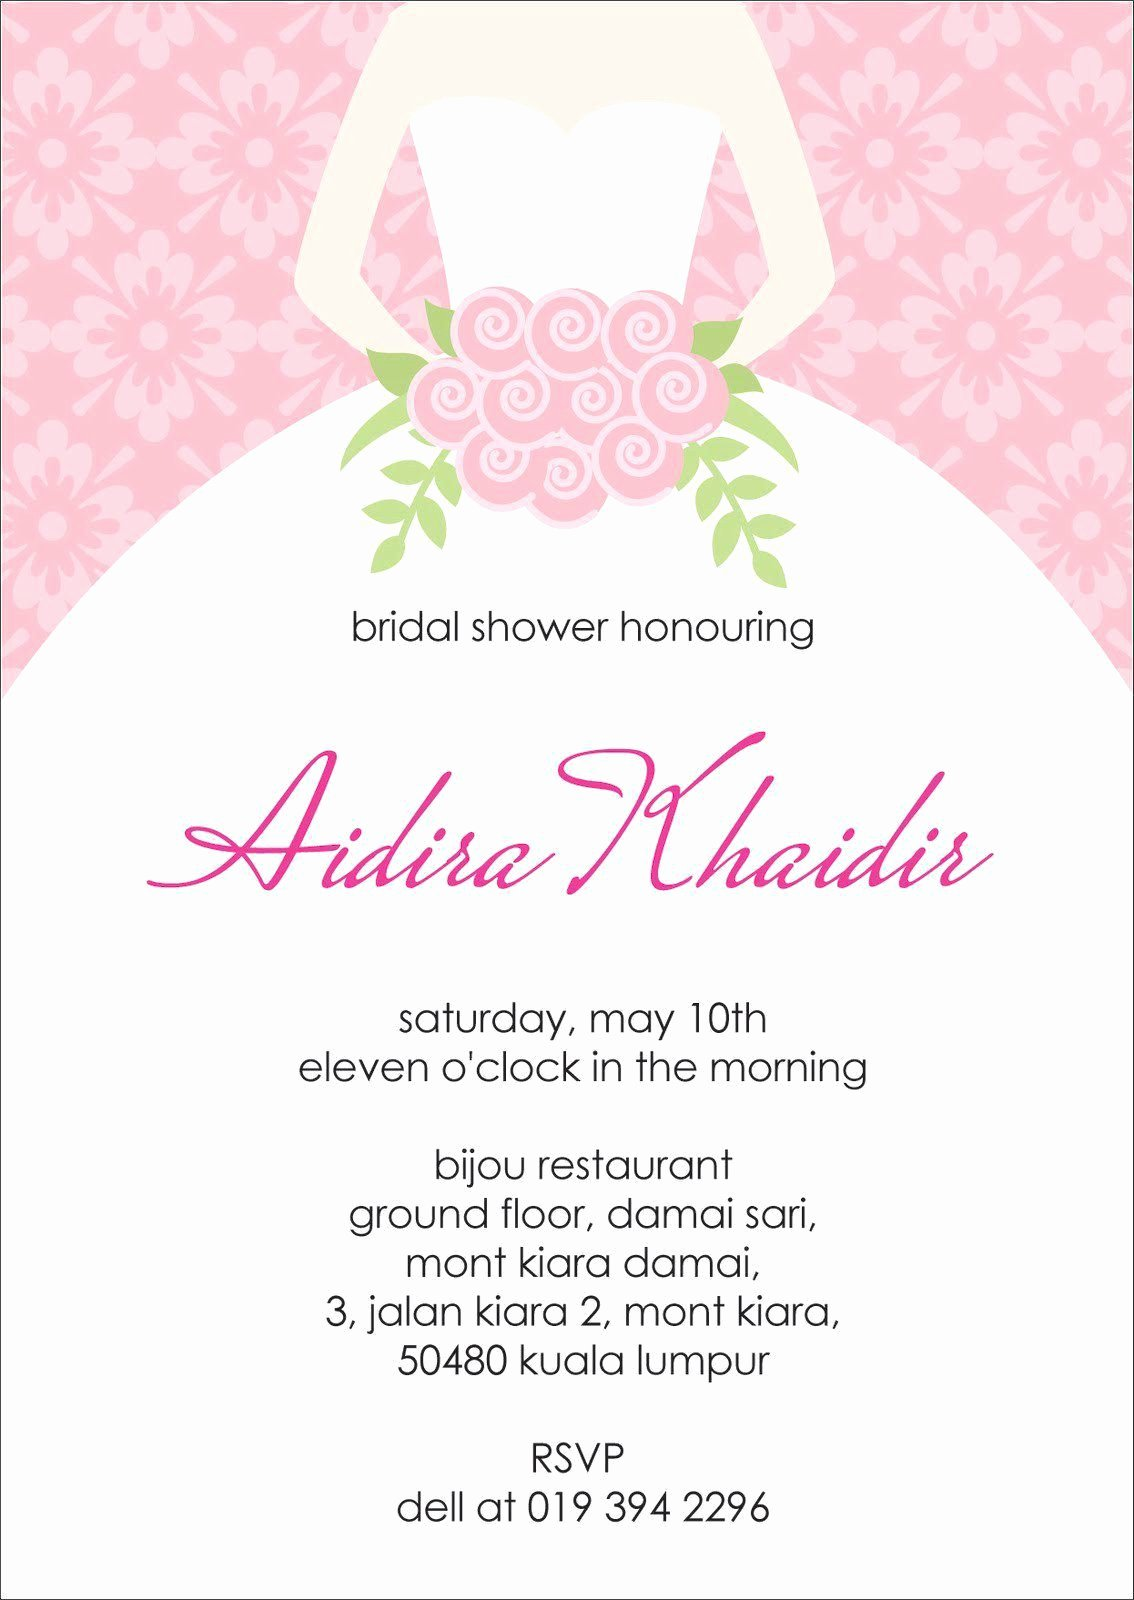 Bridal Shower Invite Template Awesome Bridal Shower Invite Template Chanel Bridal Shower